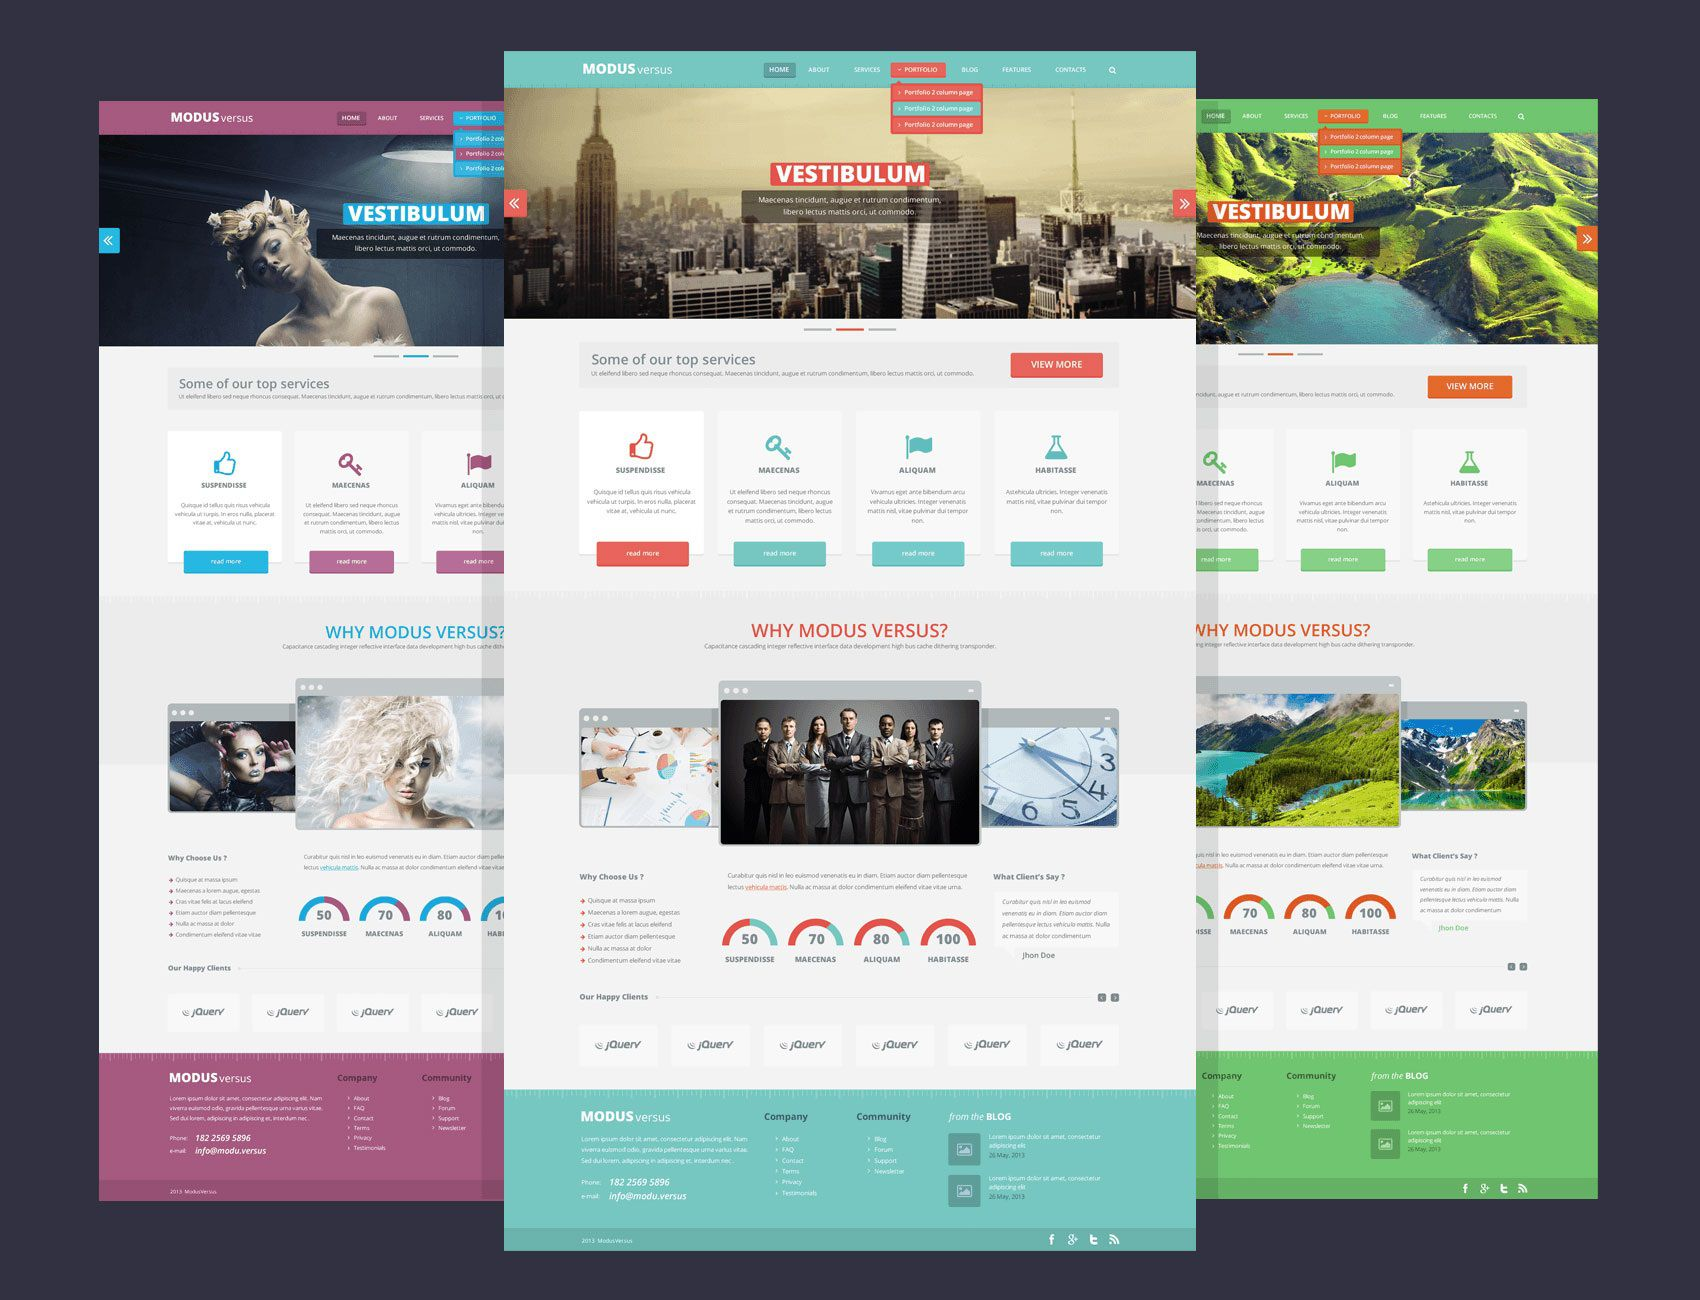 004 Incredible Website Design Template Free Image  Asp.net Web Download PsdFull